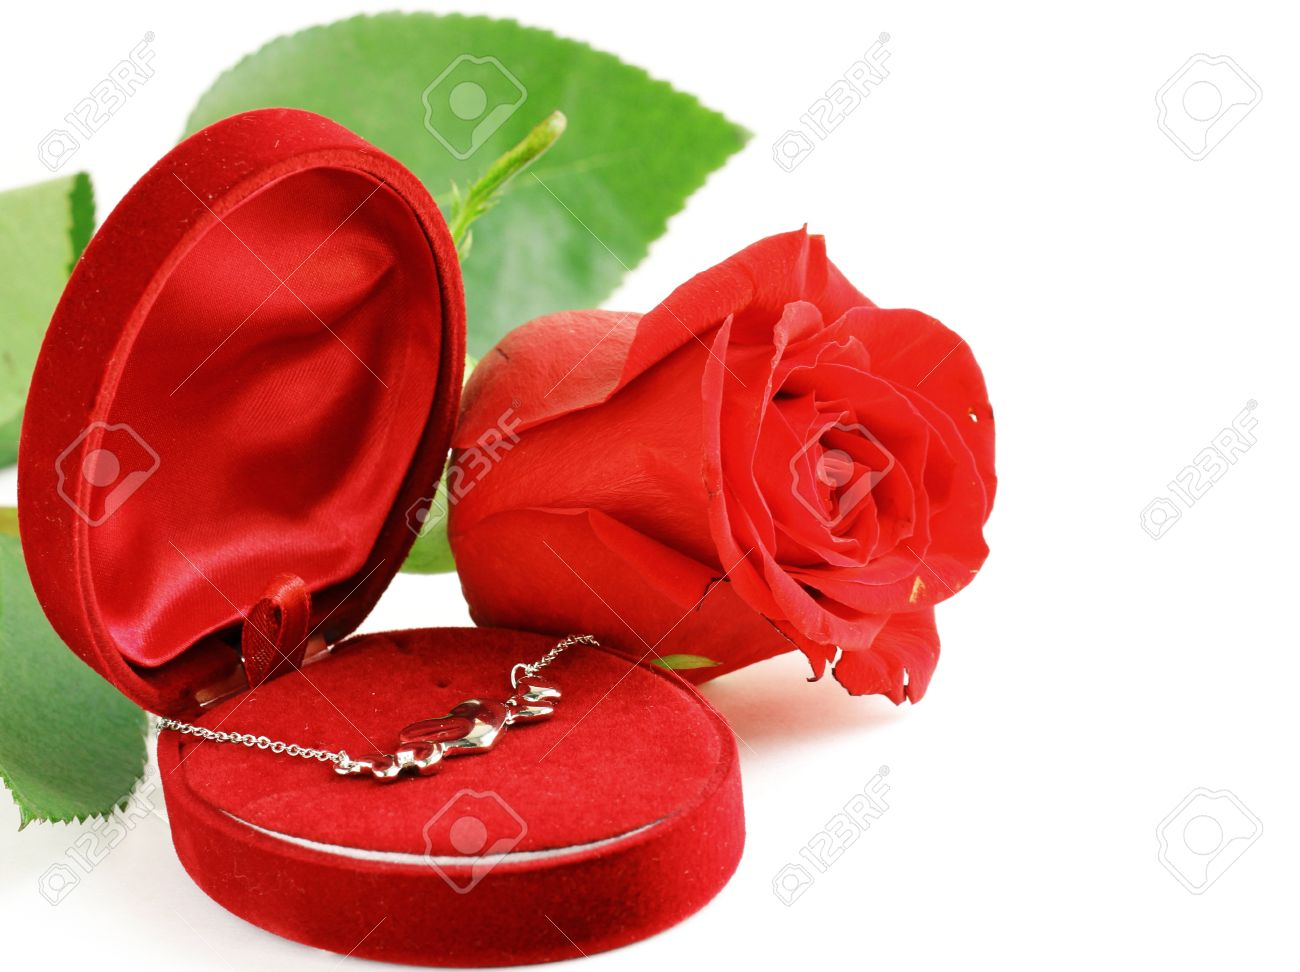 Flowers And Gifts For Valentine S Day Roses Chocolates And Stock